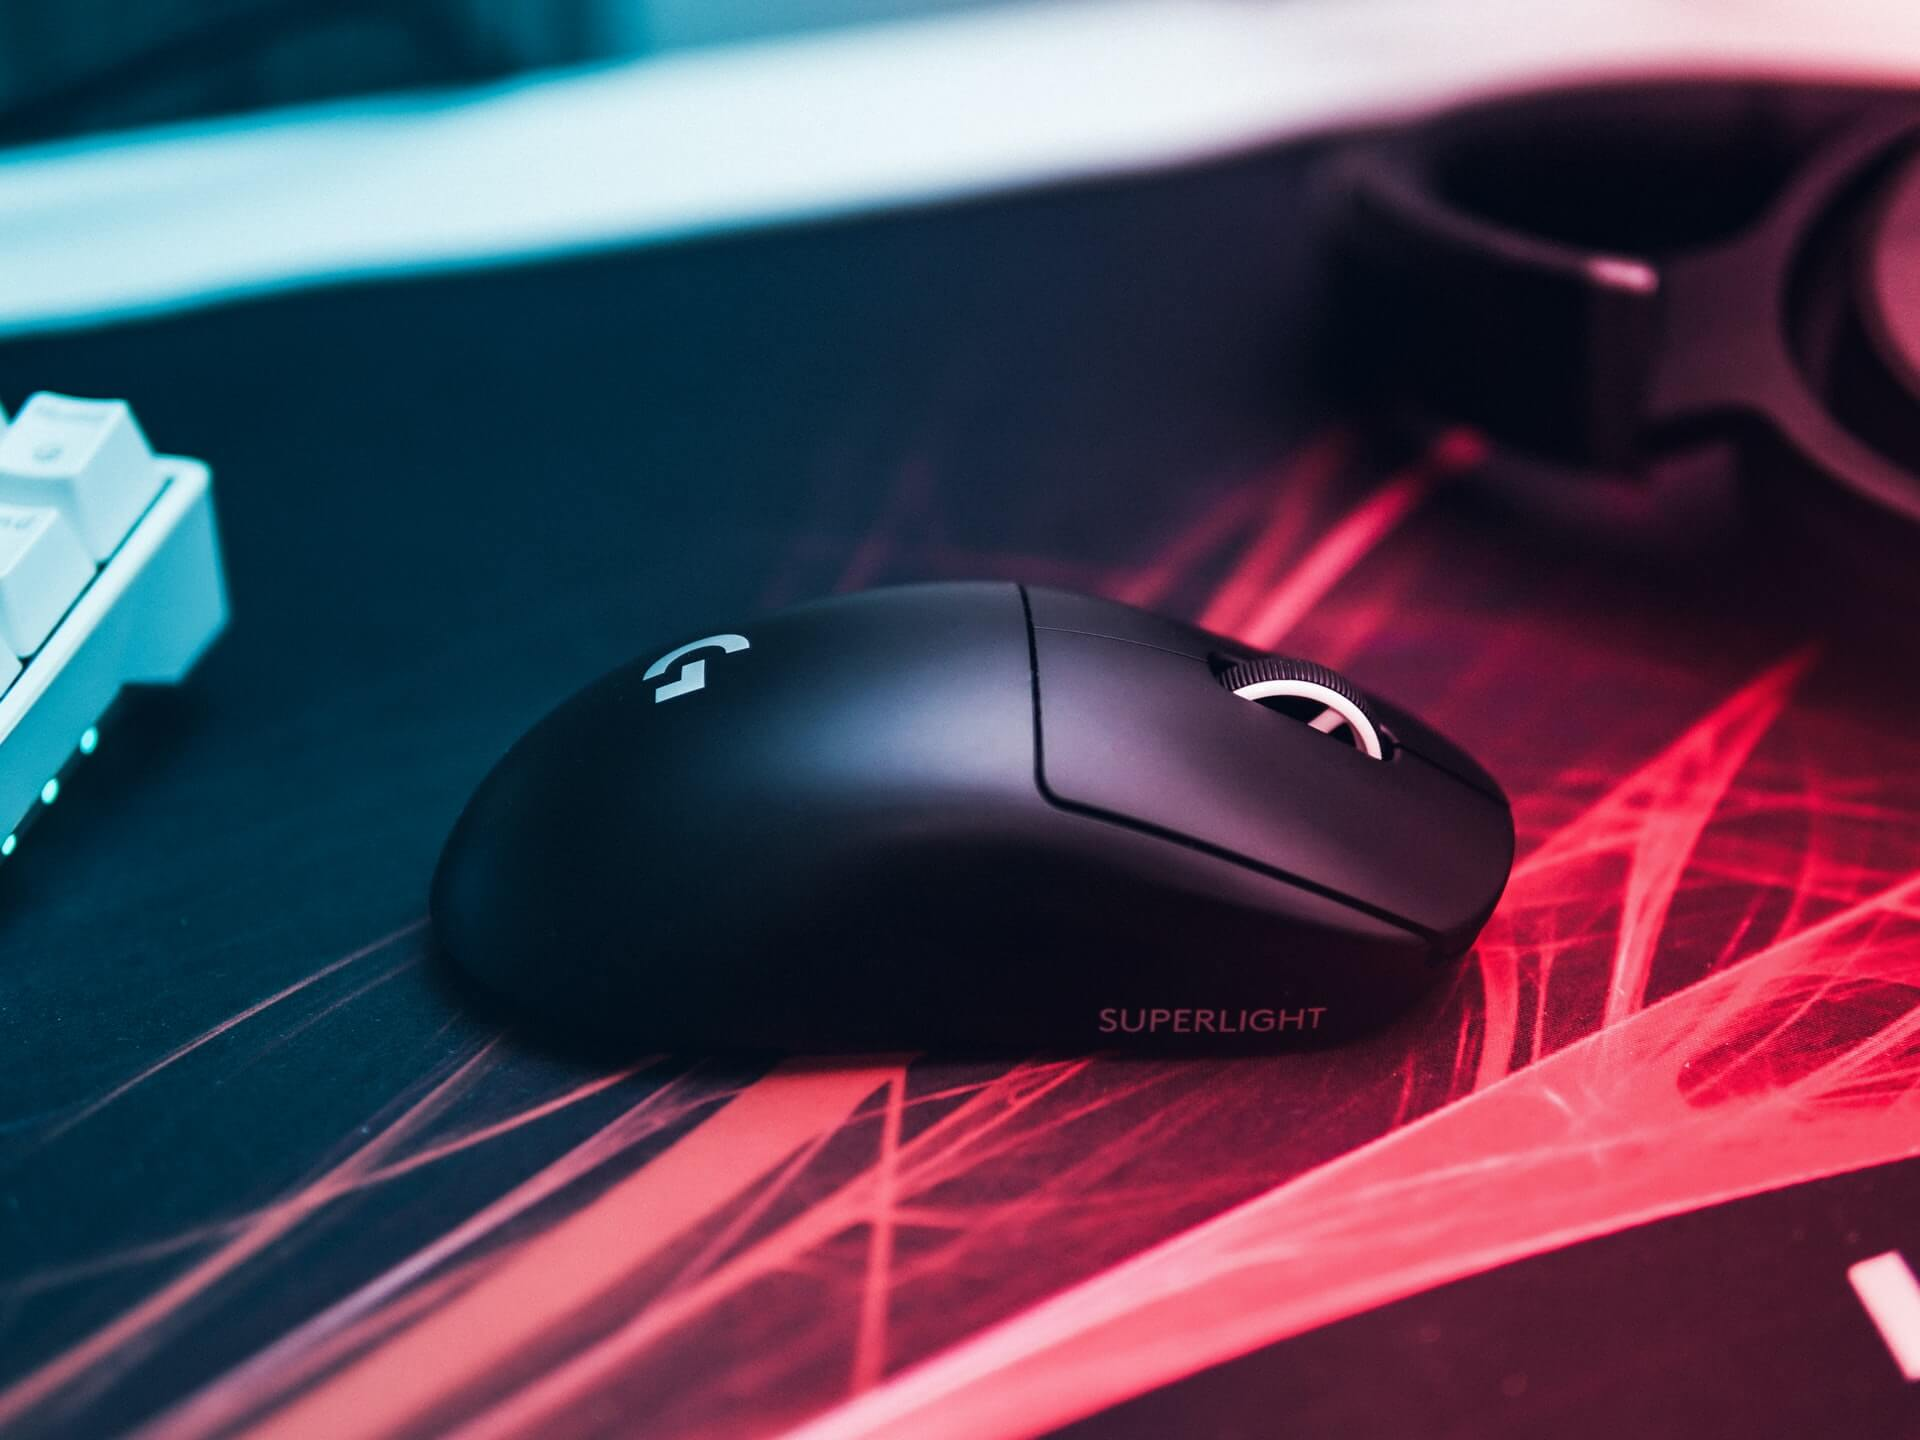 9 Best Gaming Mouse Under 3000 Rs in India 2021